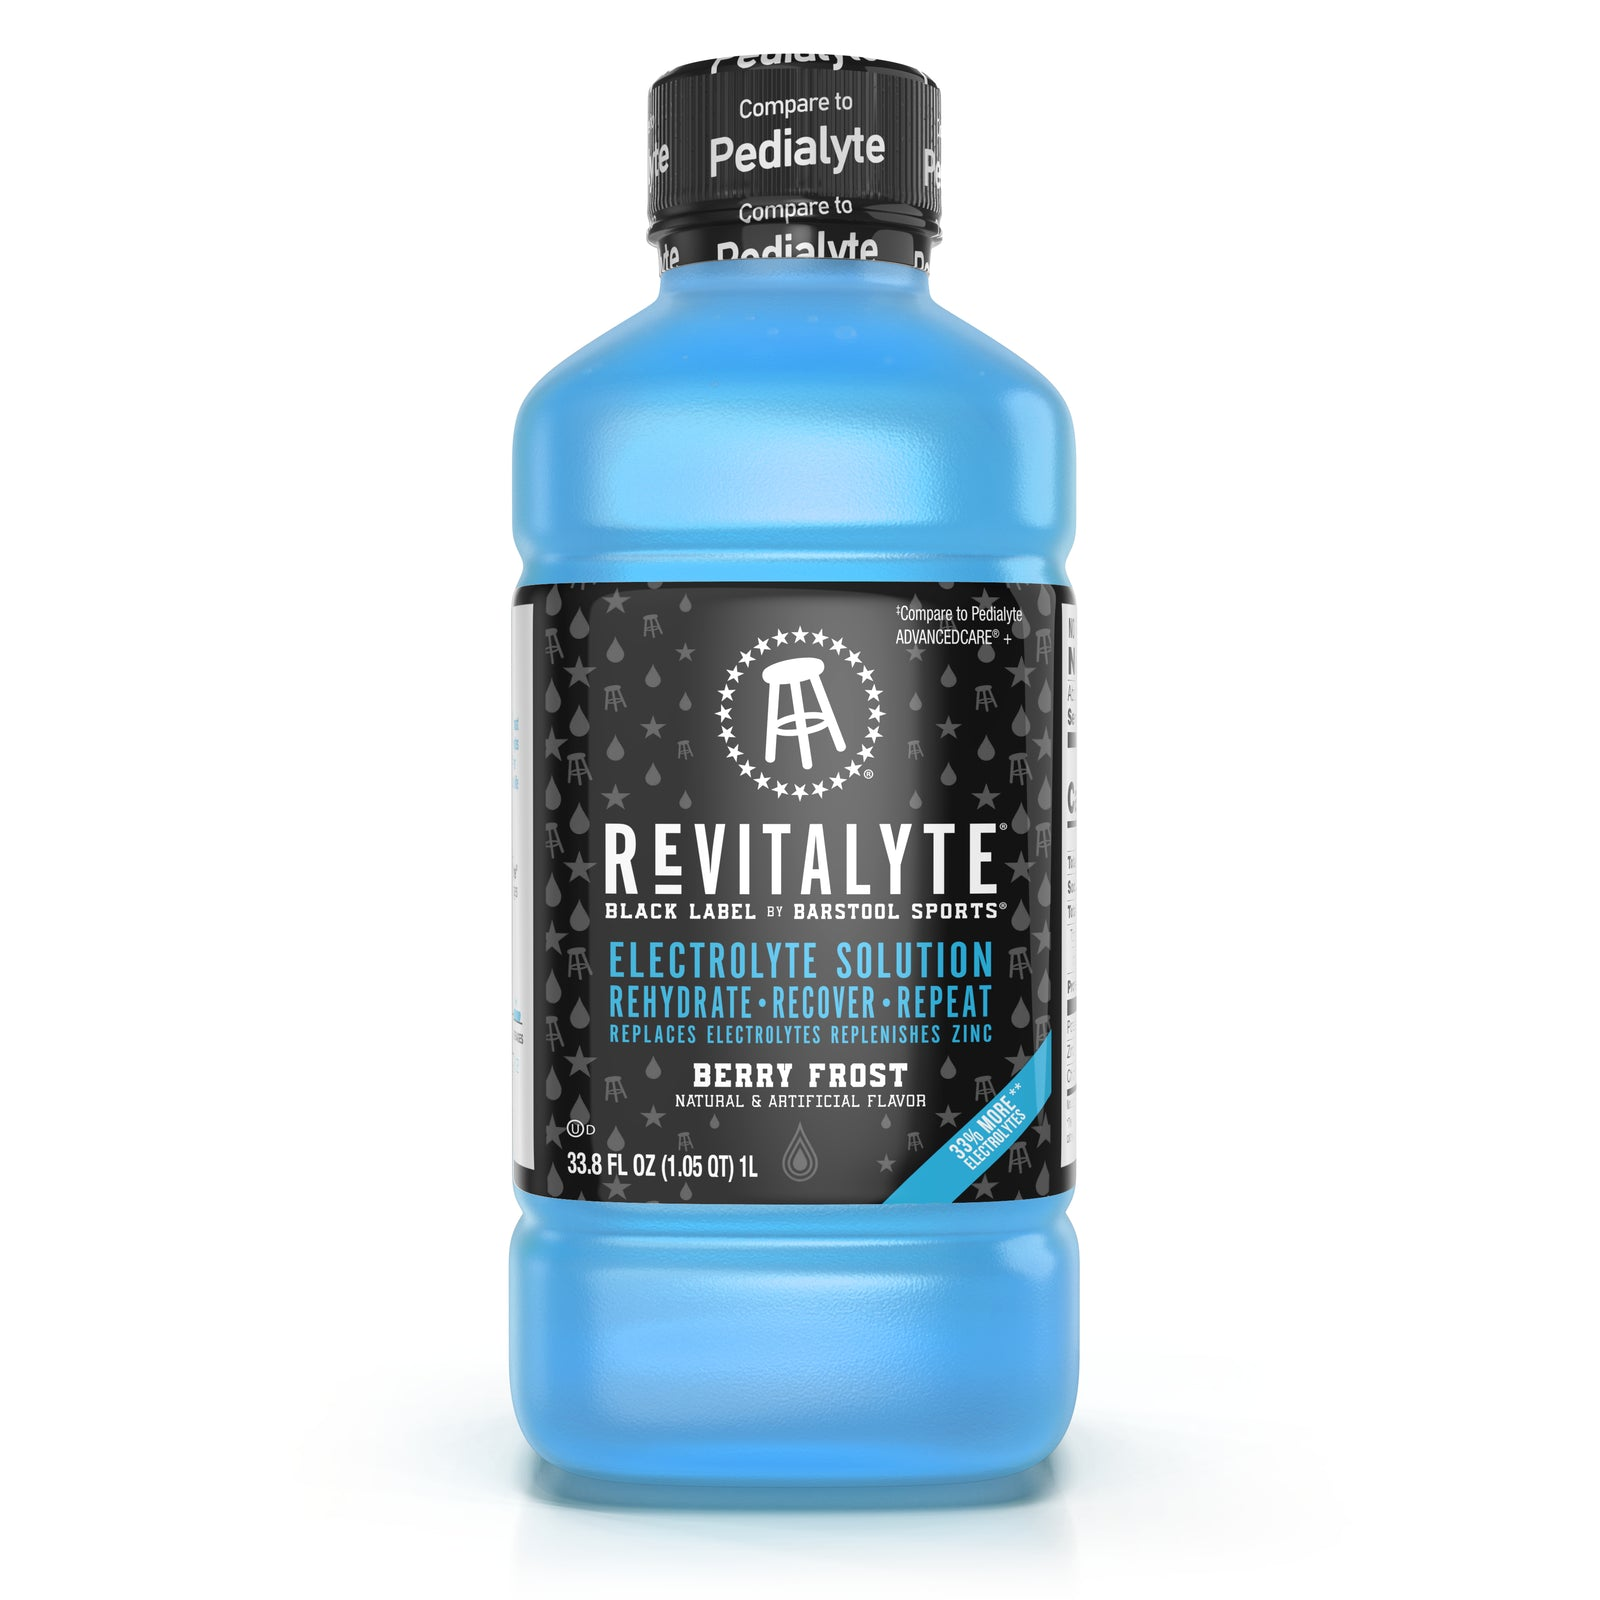 Revitalyte Black Label 1-Liter 6 Pack